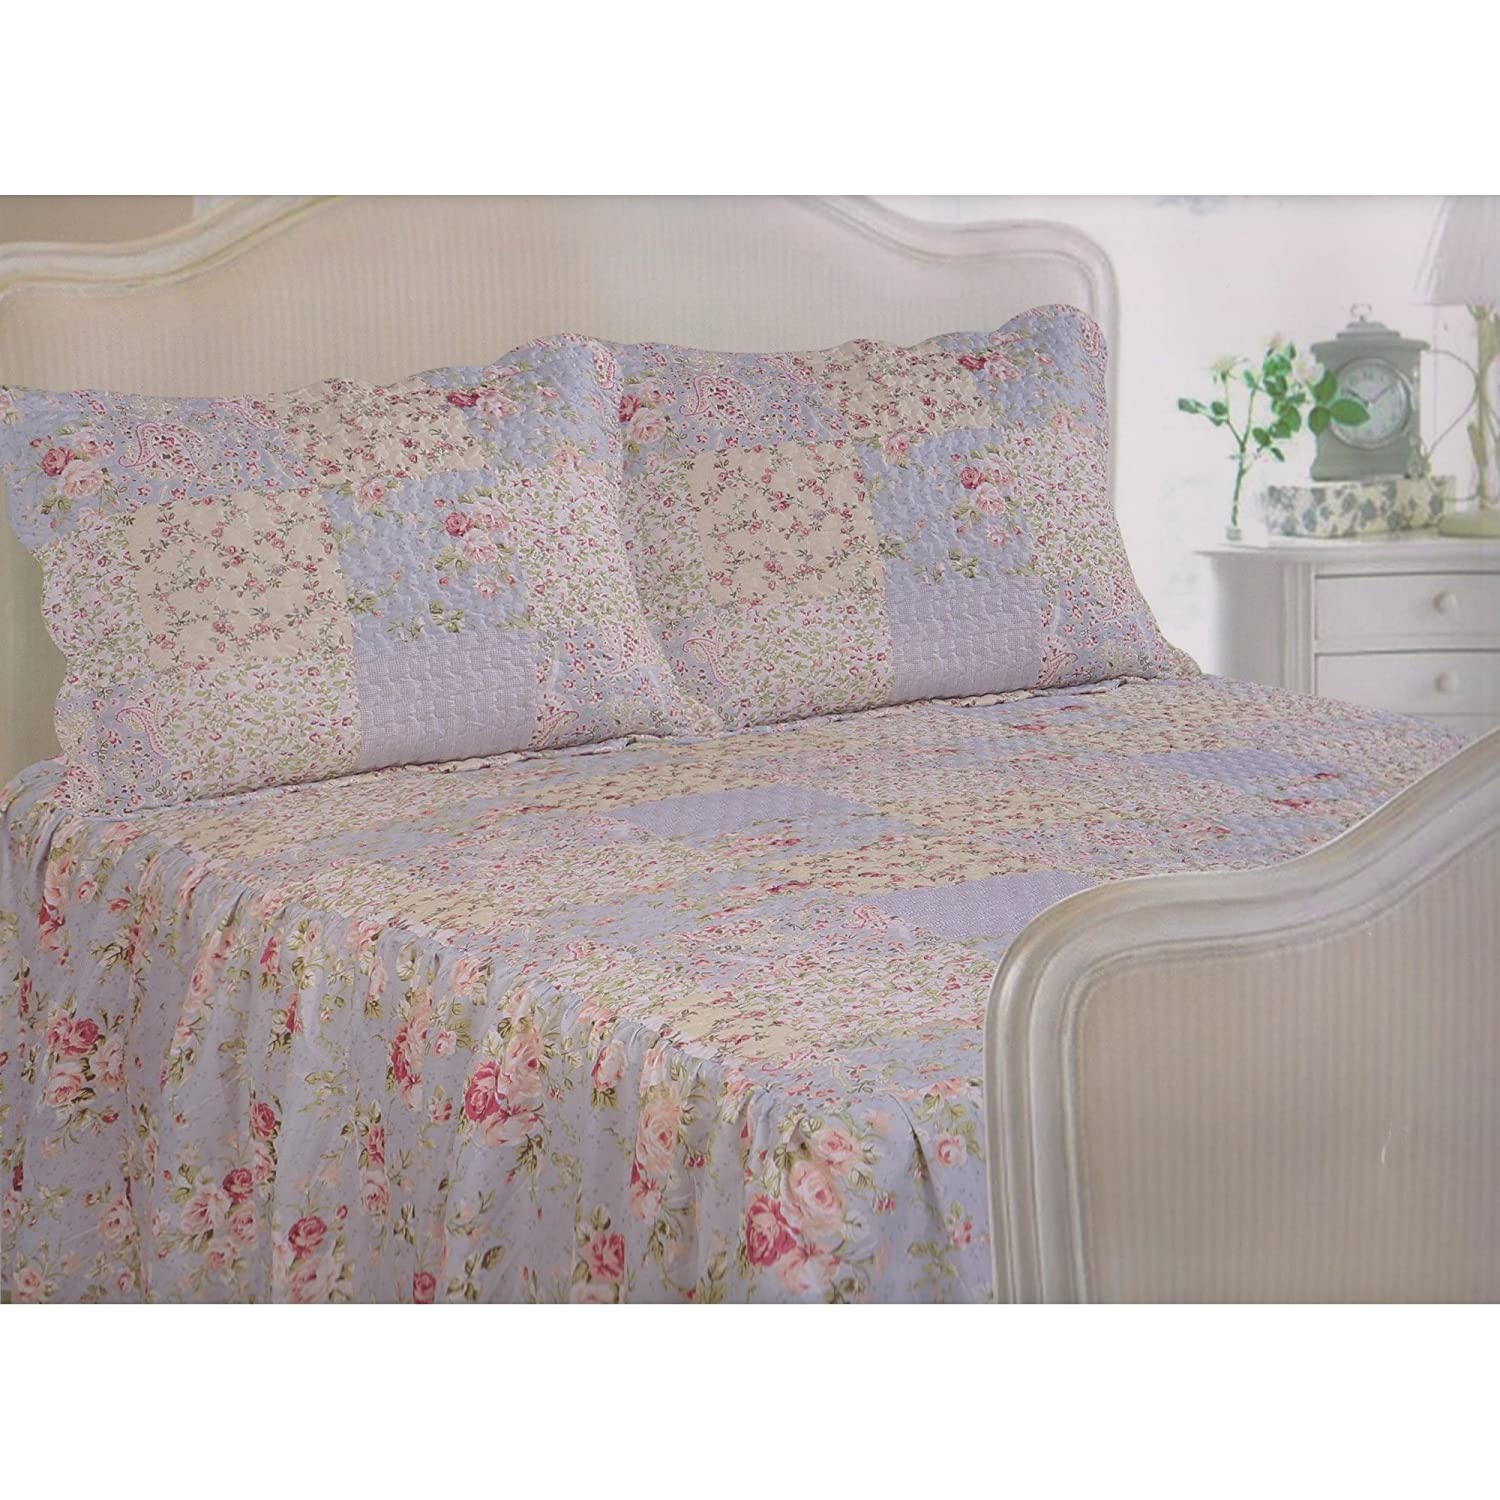 Traditional Vintage Quilted Fitted Bedspread Set Double Size Bedspread & 2 Pillowshams Frilled Utah Home Harmony